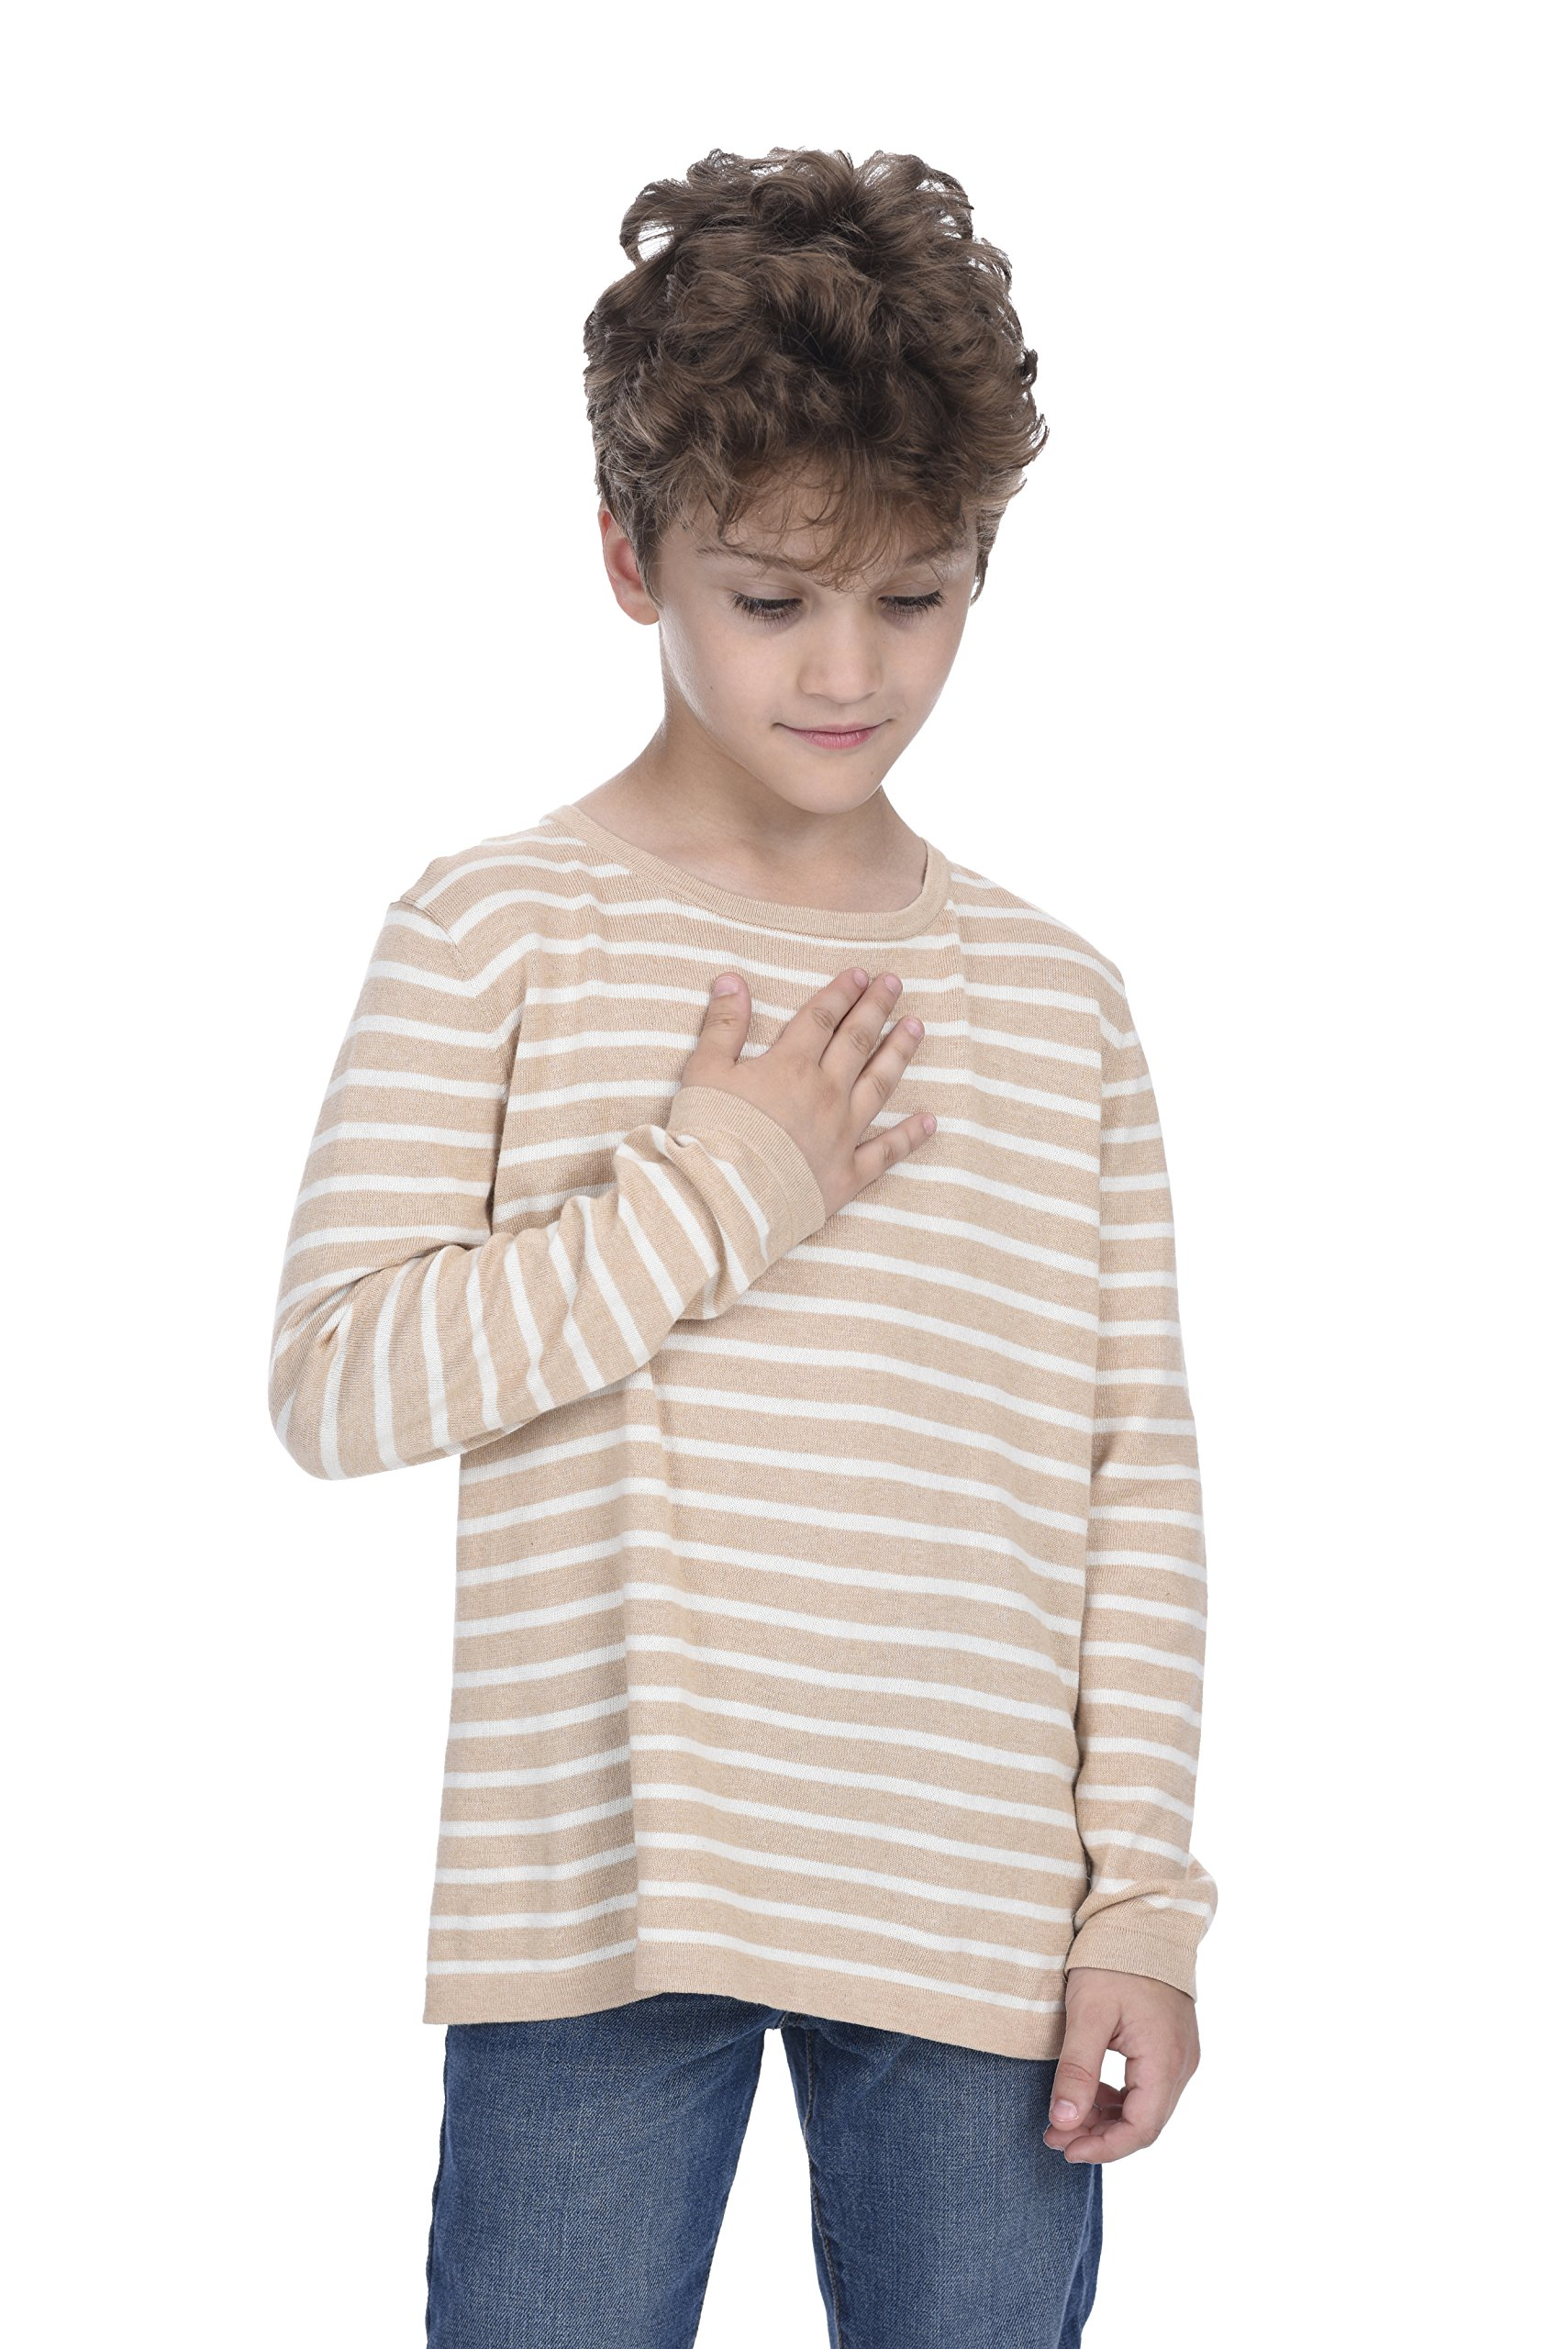 State Cashmere Kids Striped Round Neck Long Sleeve Sweatshirt (Camel/White, XXL(13-14 Years))